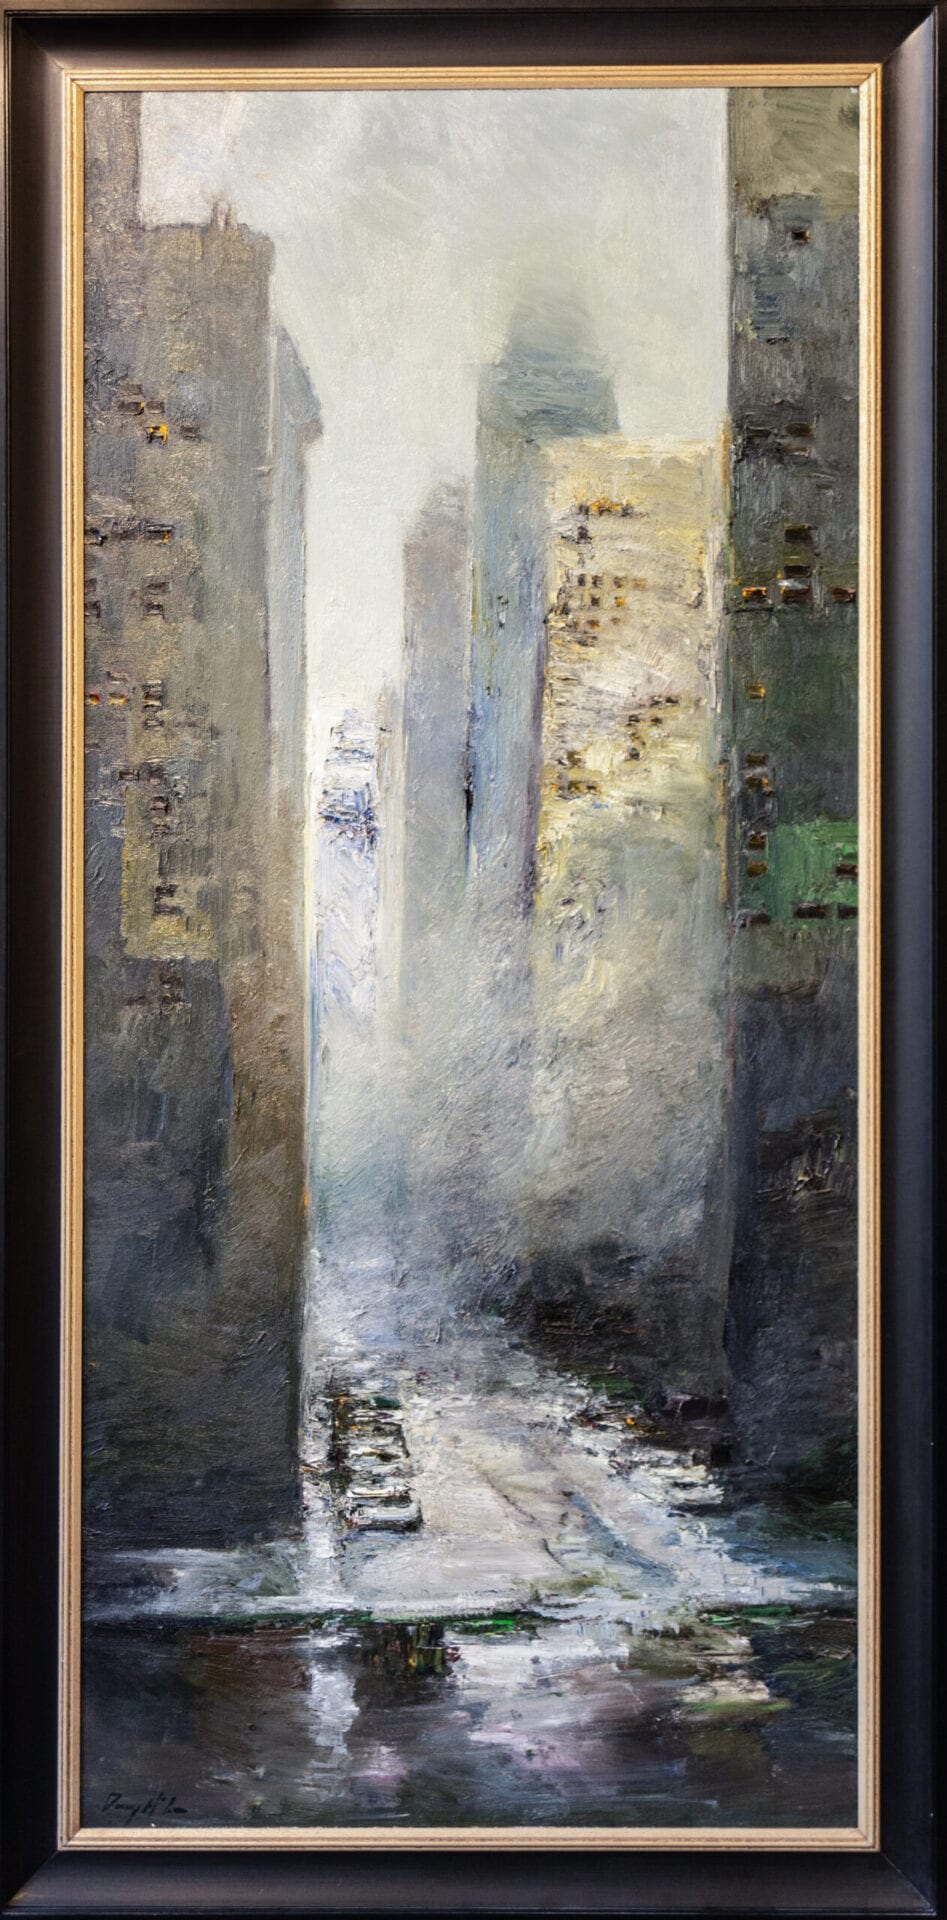 The City | Danny McCaw | Oil | 80 x 36""